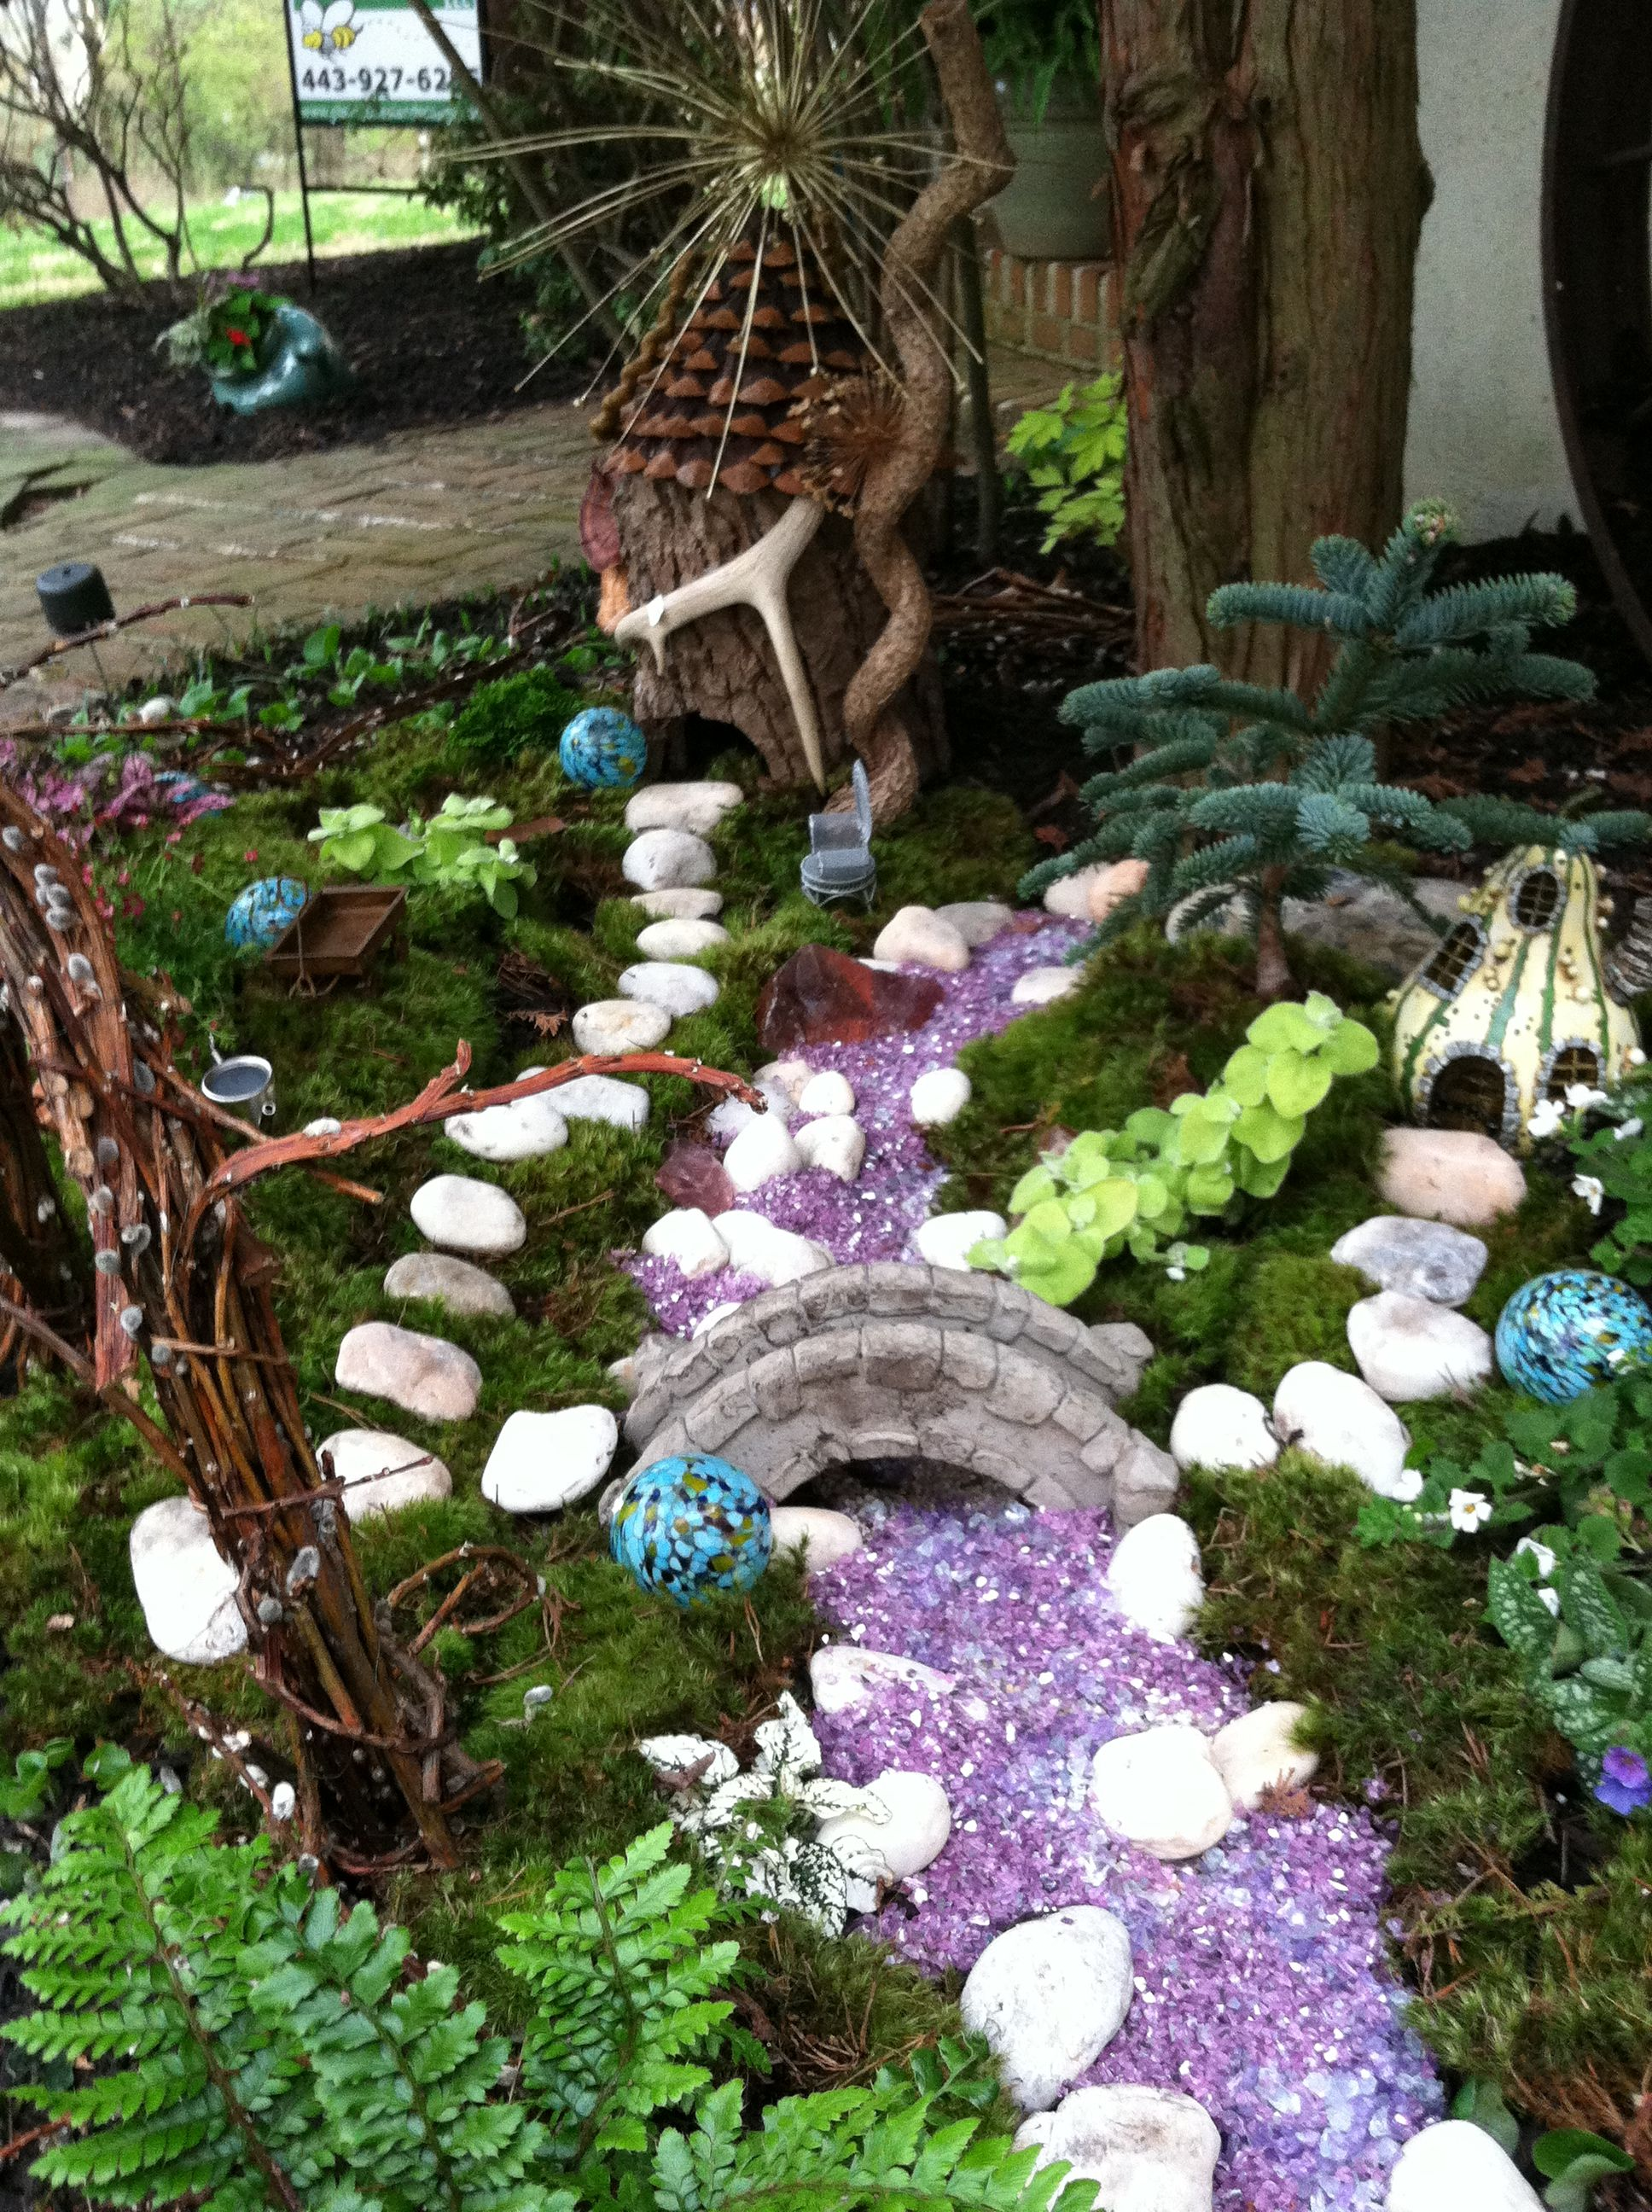 Find This Pin And More On Enchanted Fairy Garden Kit By Rayncathy.